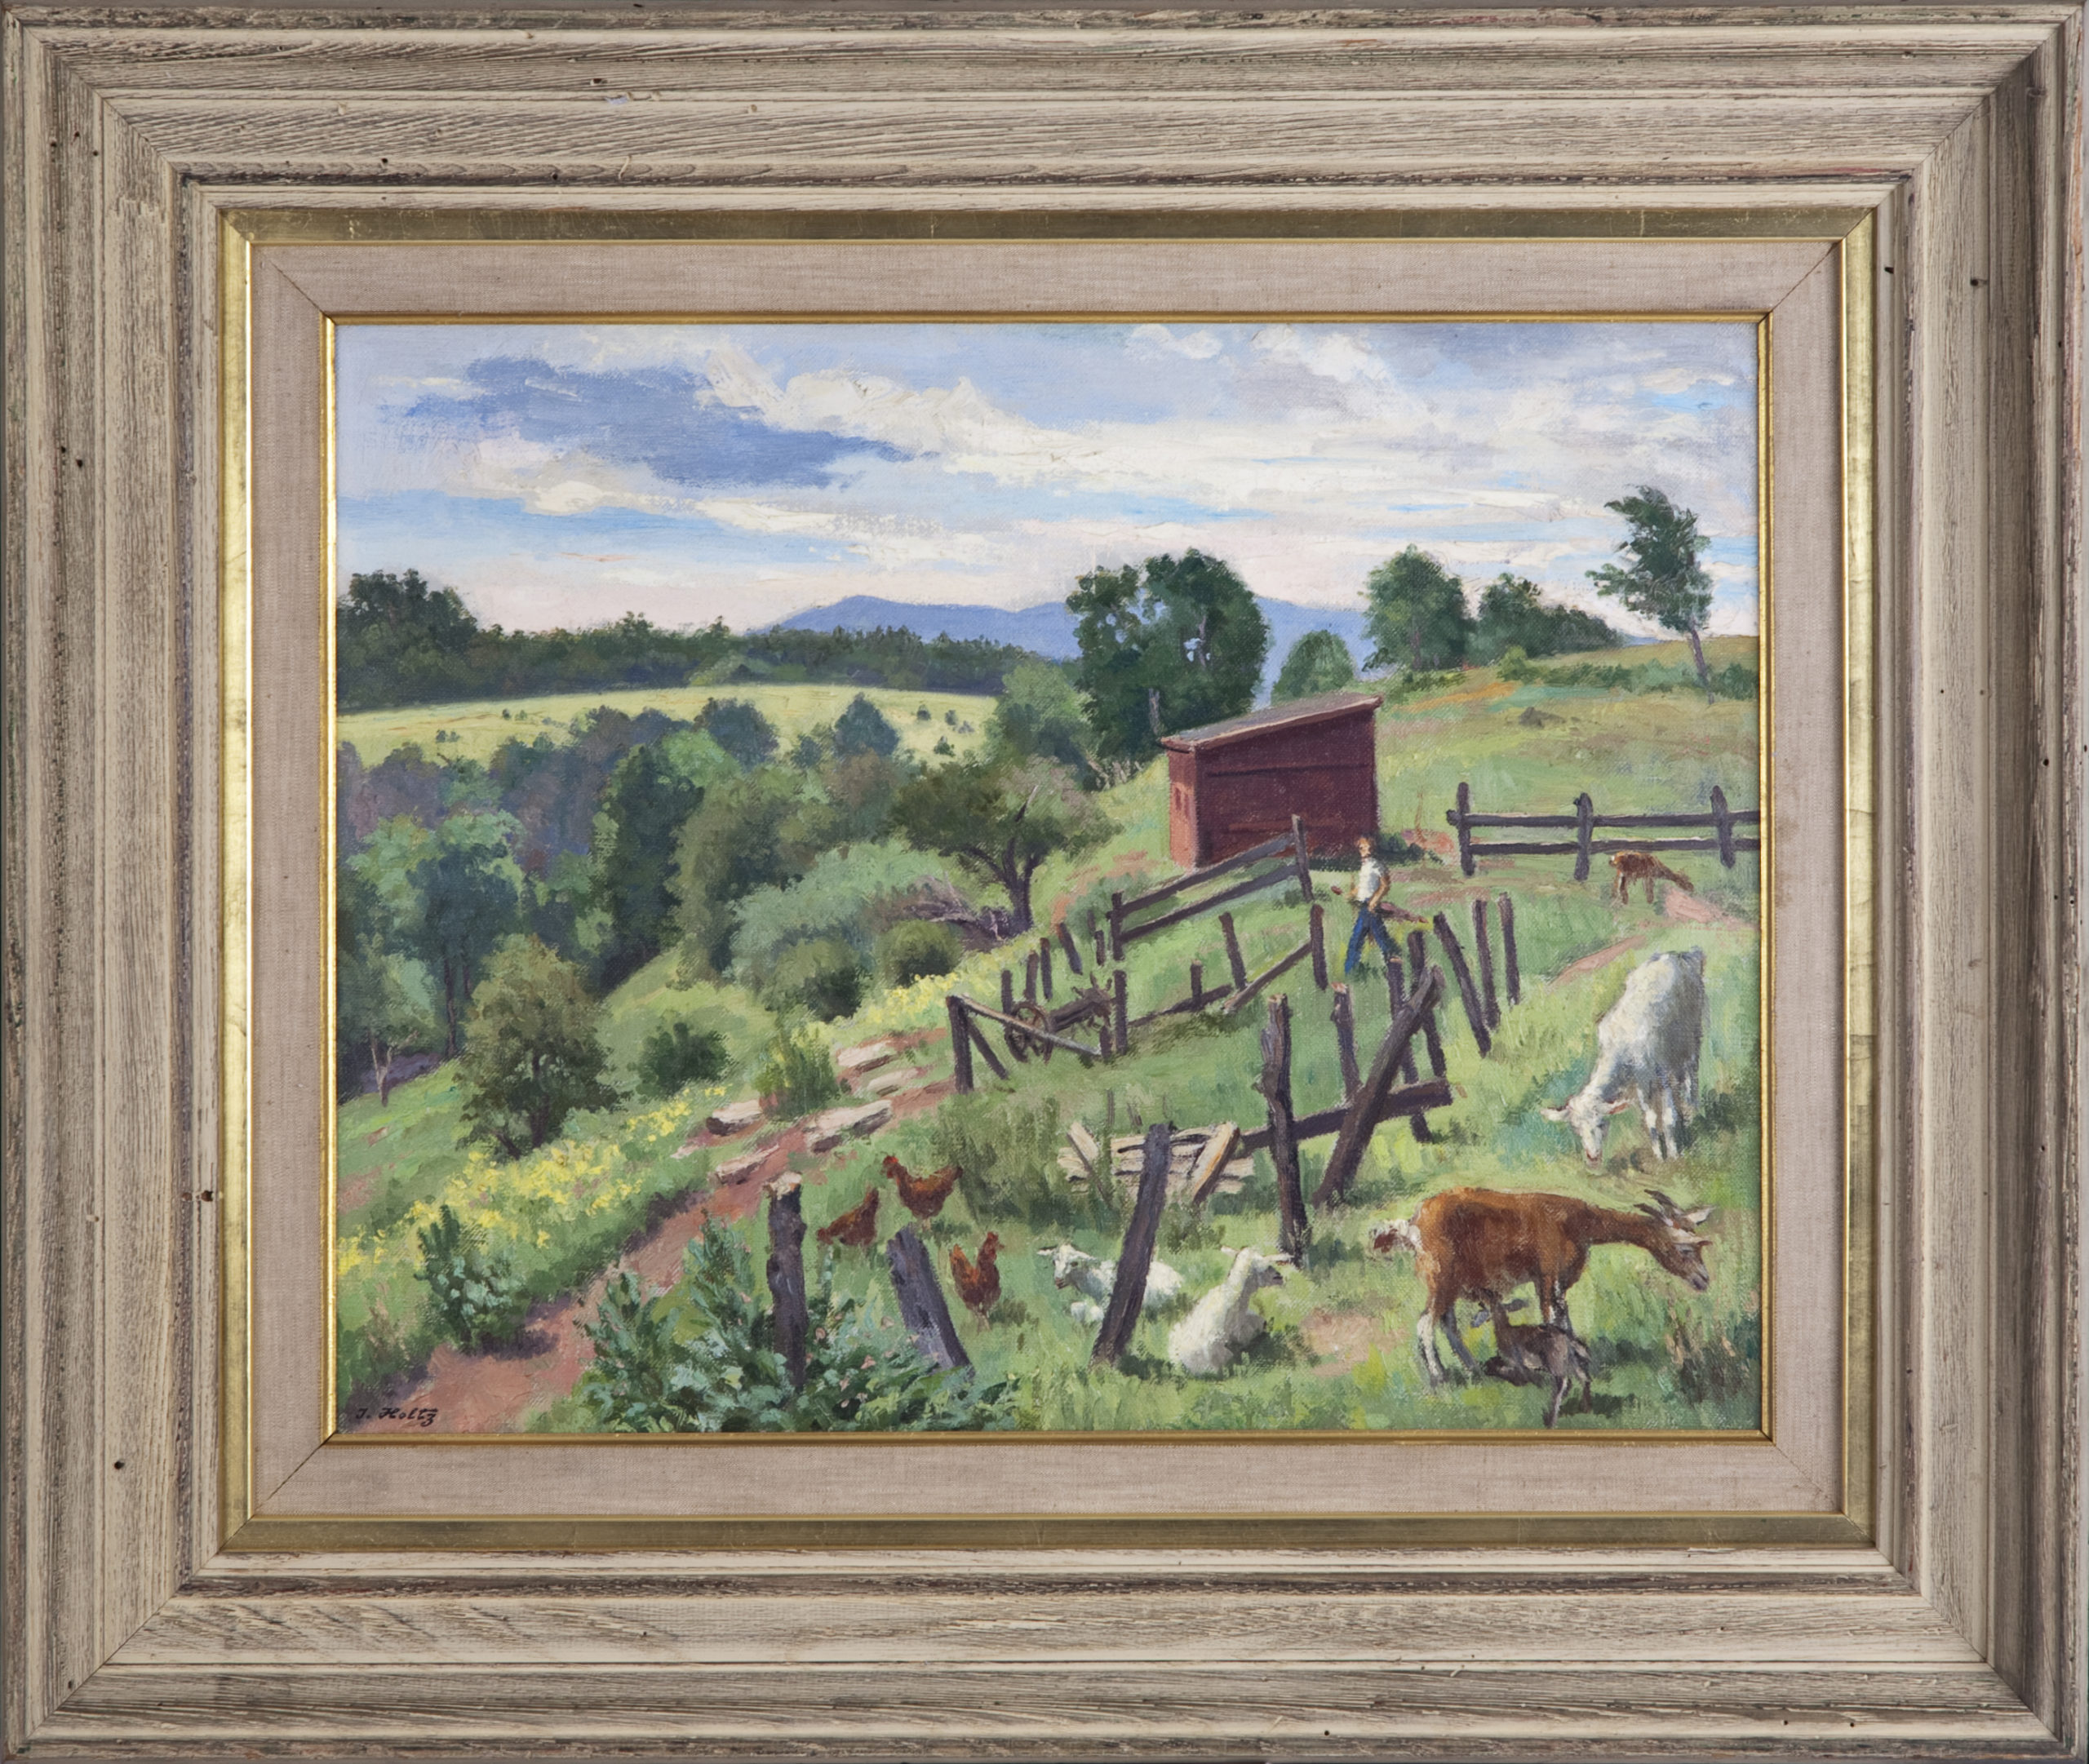 129 Farm animals 1954 - Oil on Canvas - 18 x 14 - Frame: 25.5 x 21.5 x 3.25